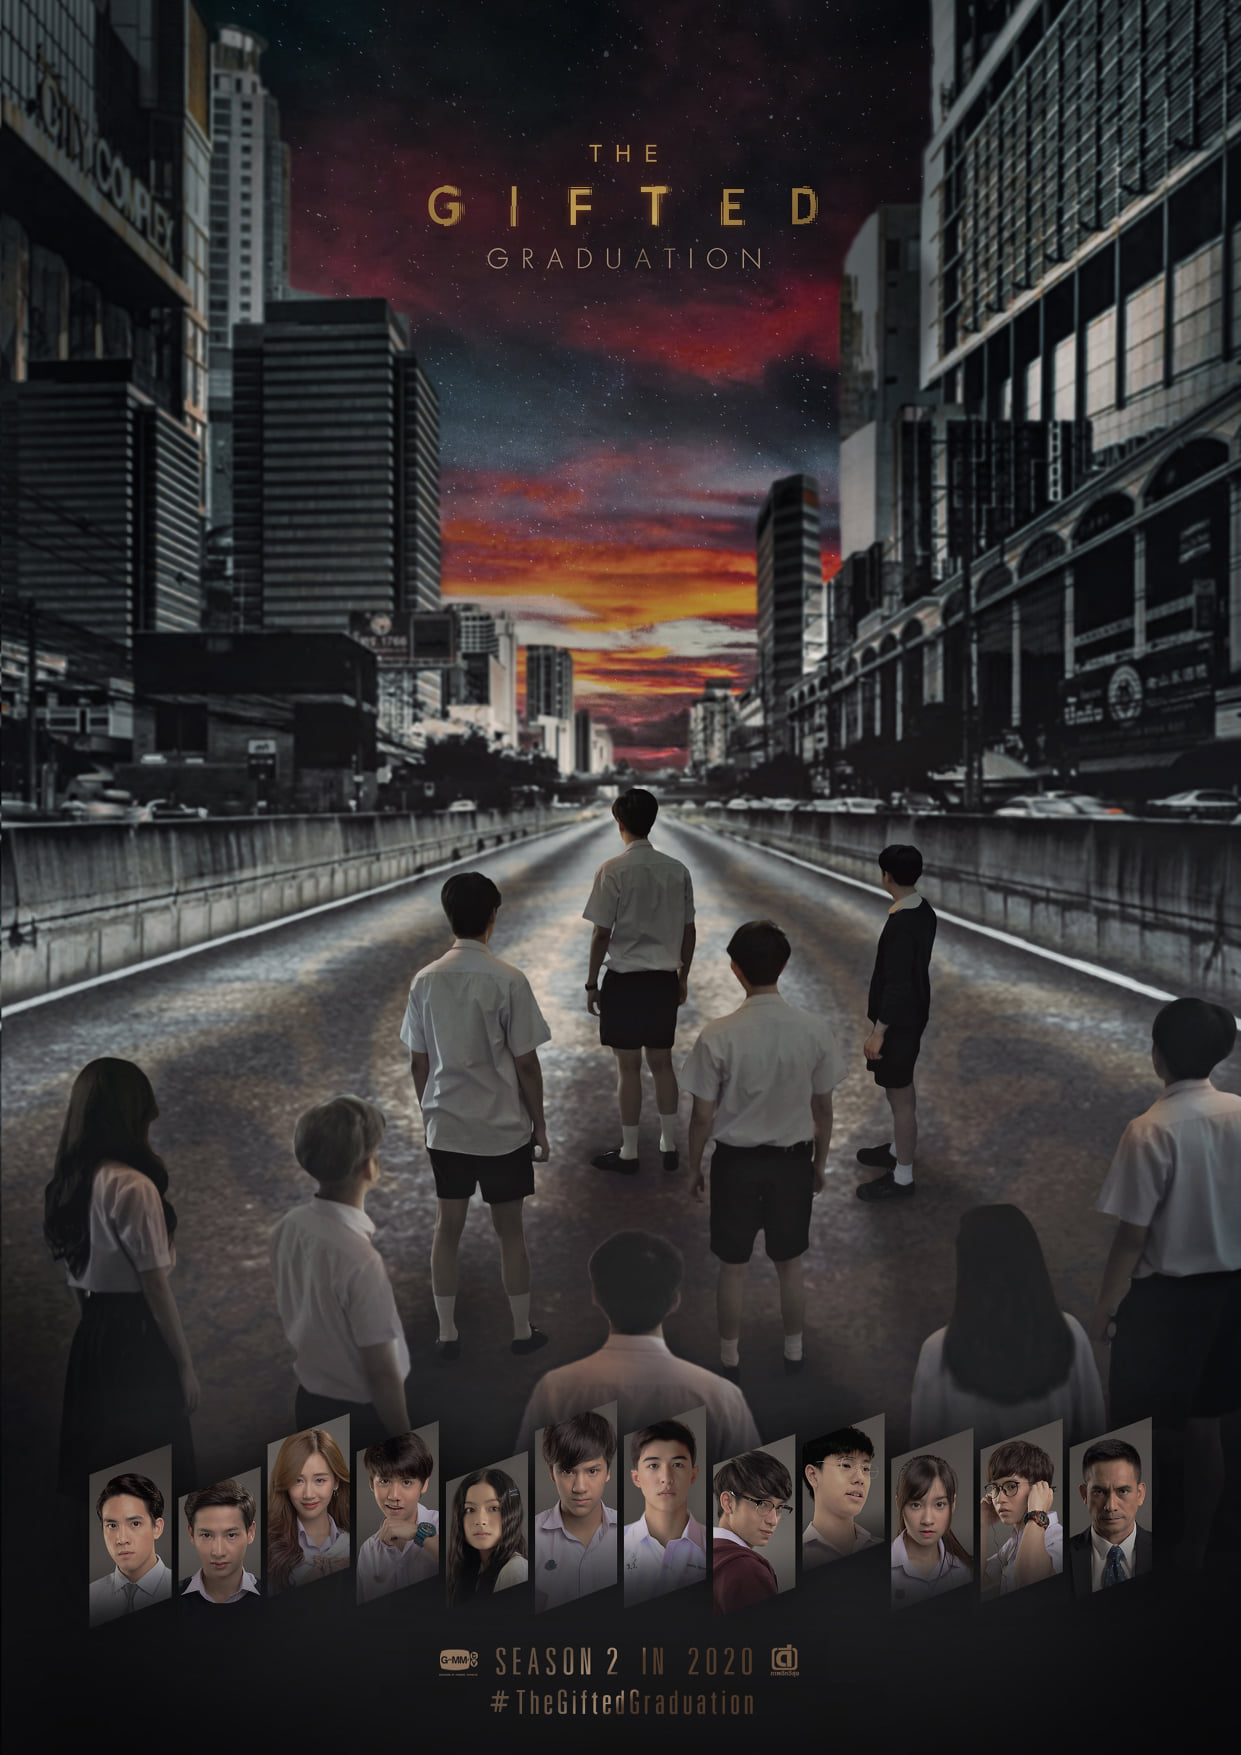 The Gifted Graduation: Serial Thailand Penuh Misteri